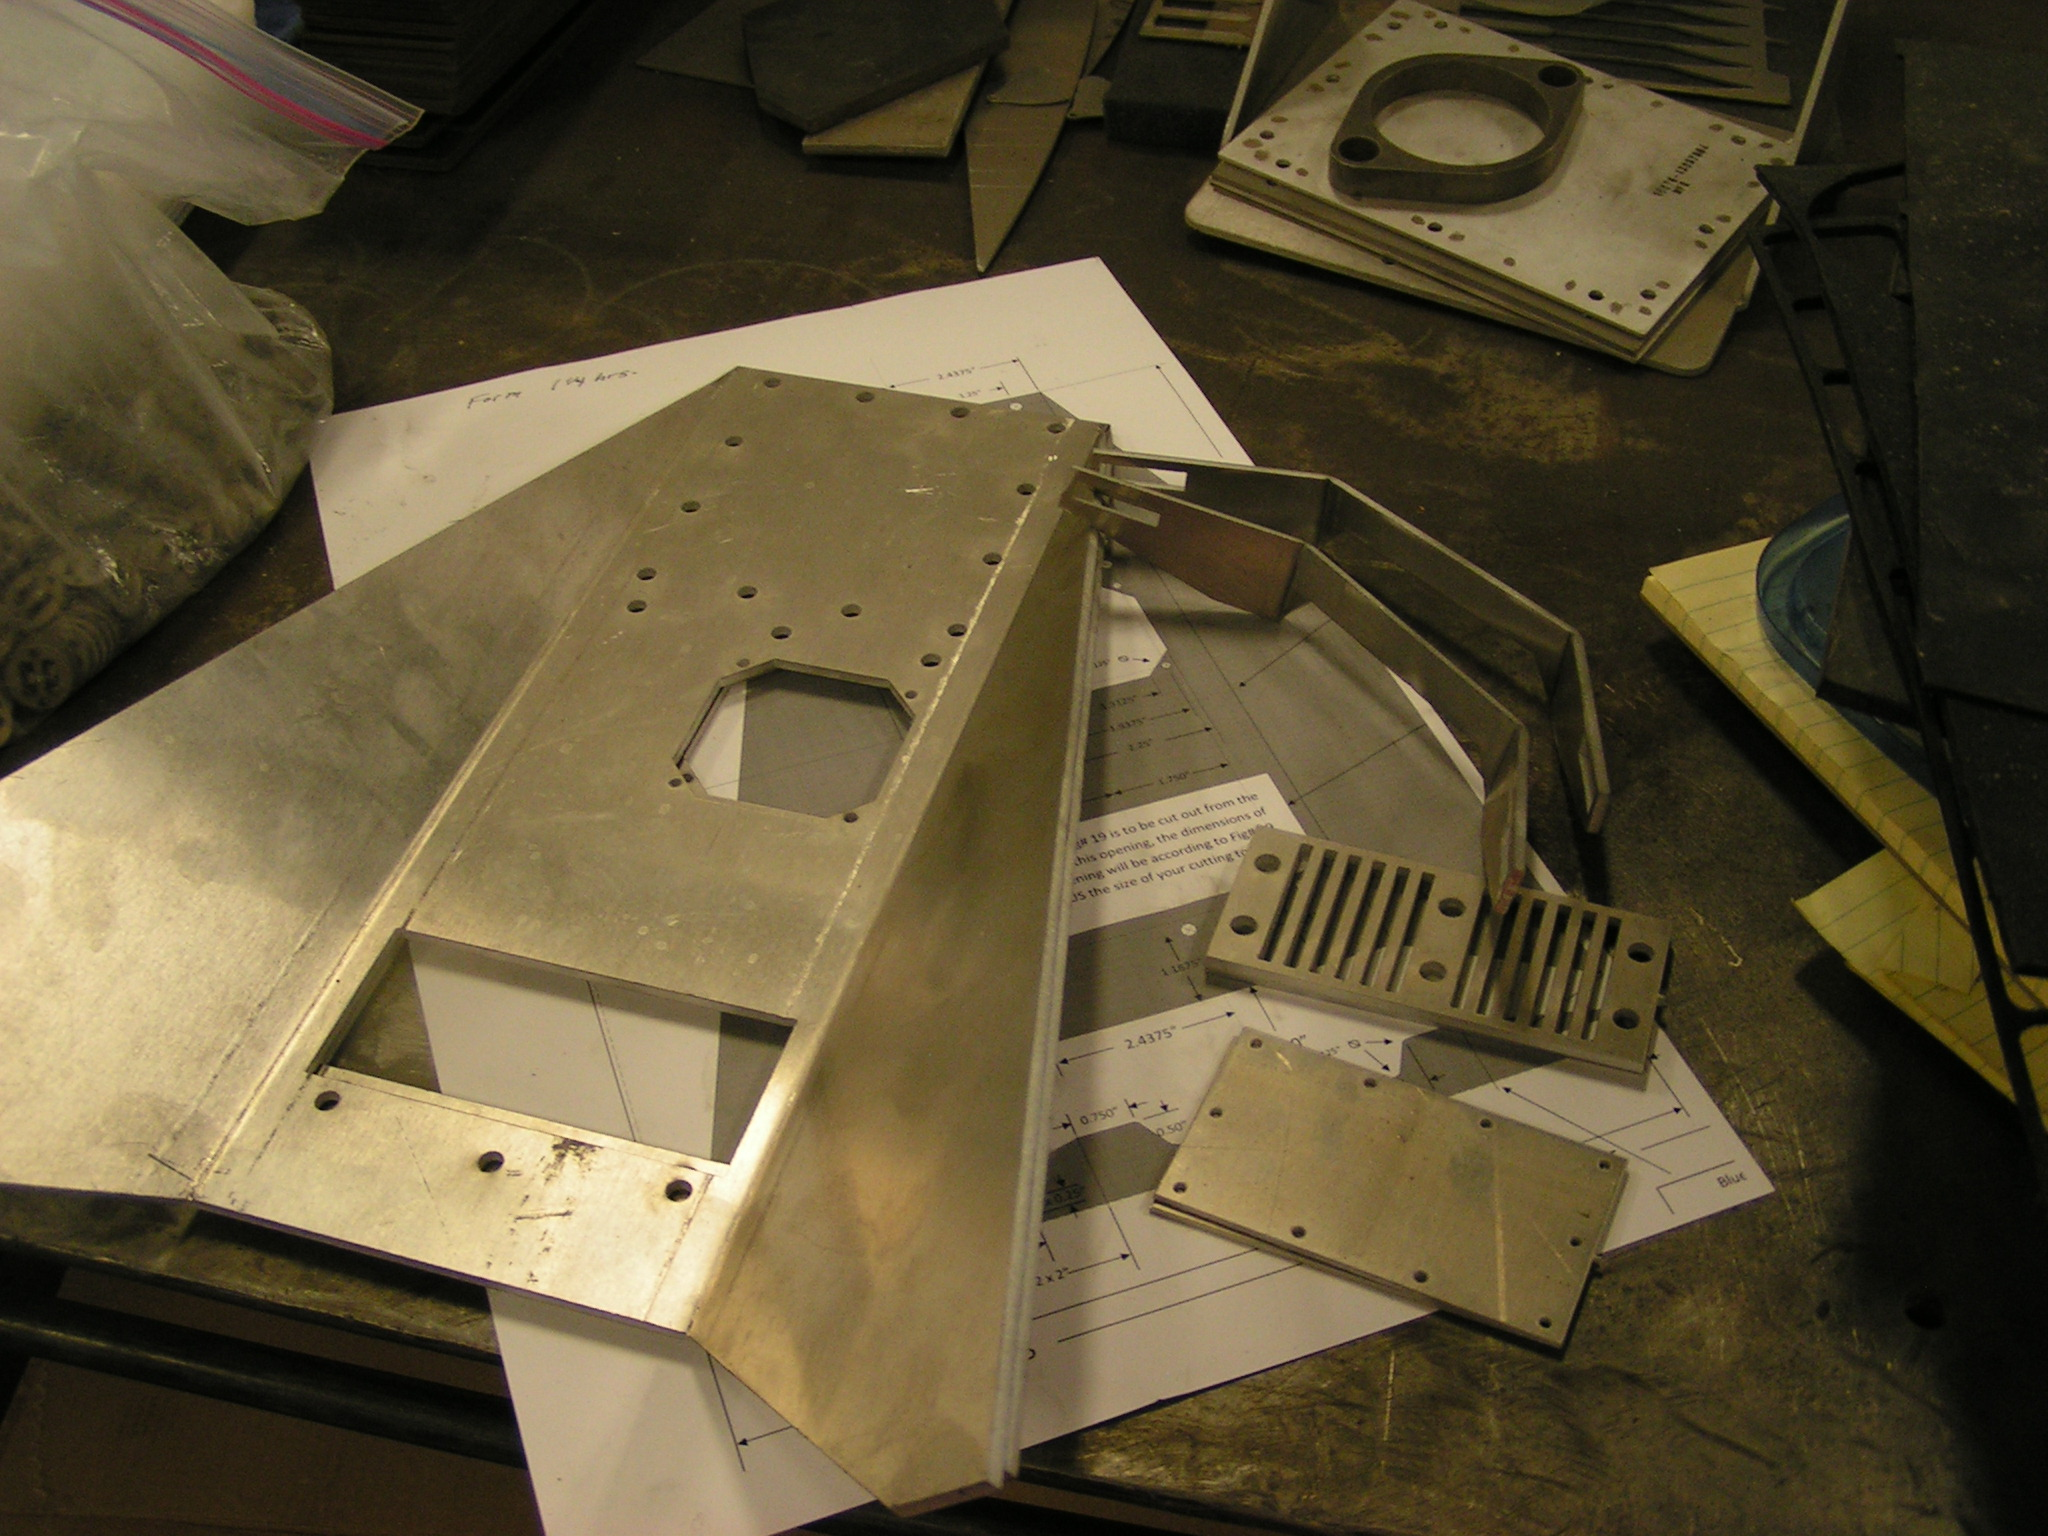 waterjet-cut-steel-fabrication-shop-bent